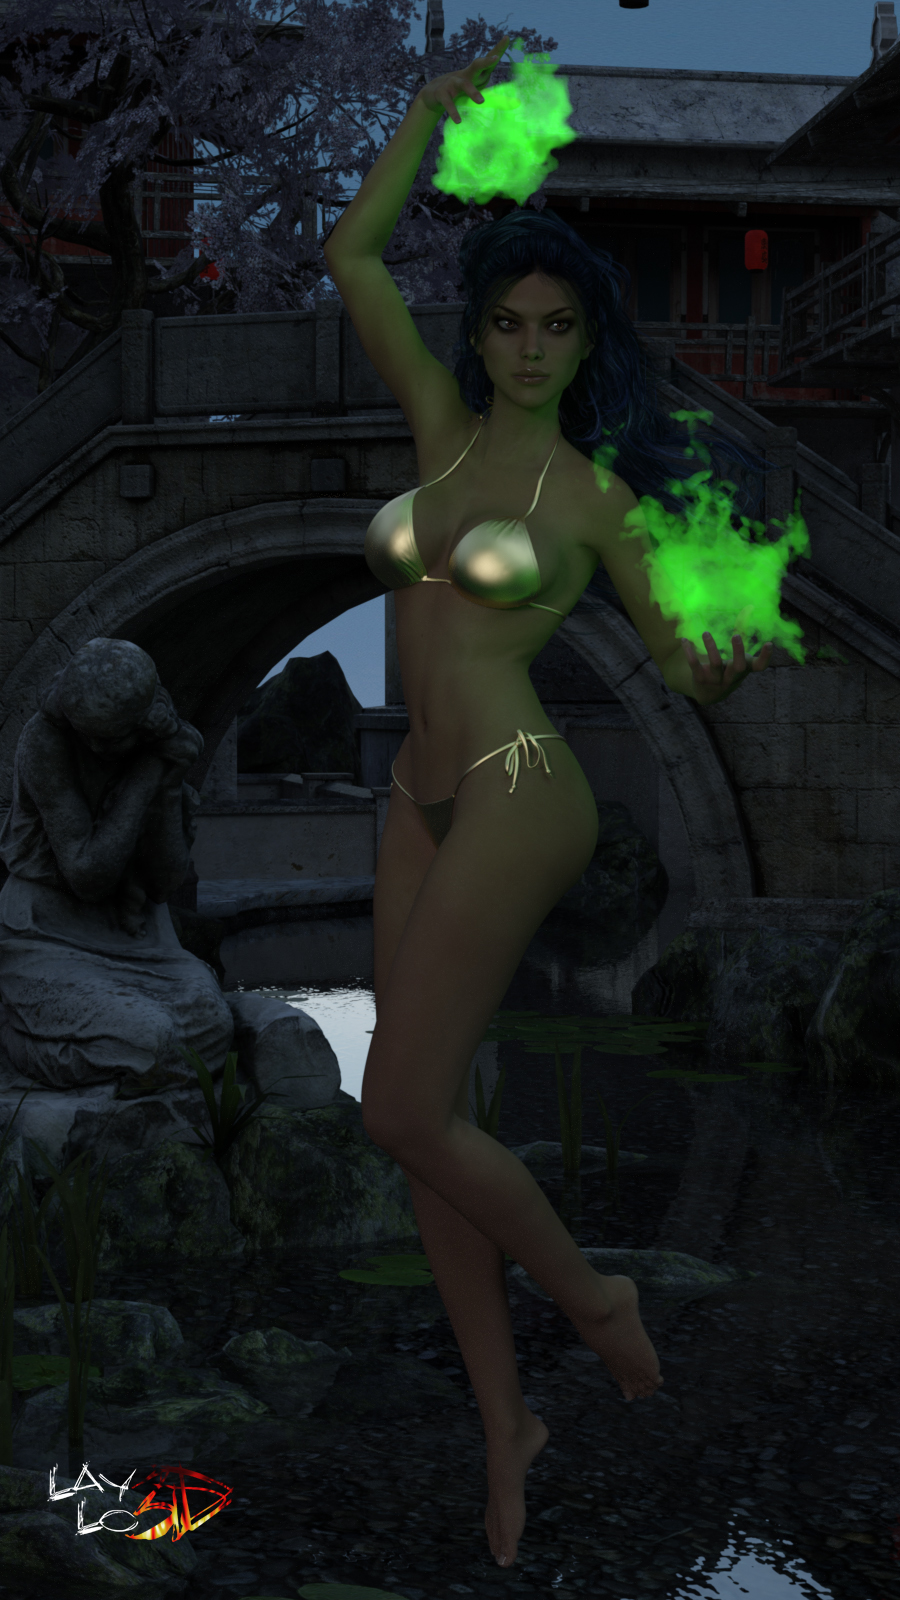 Requested by Zombi-Horde: Lynx, Pic 3 of 4